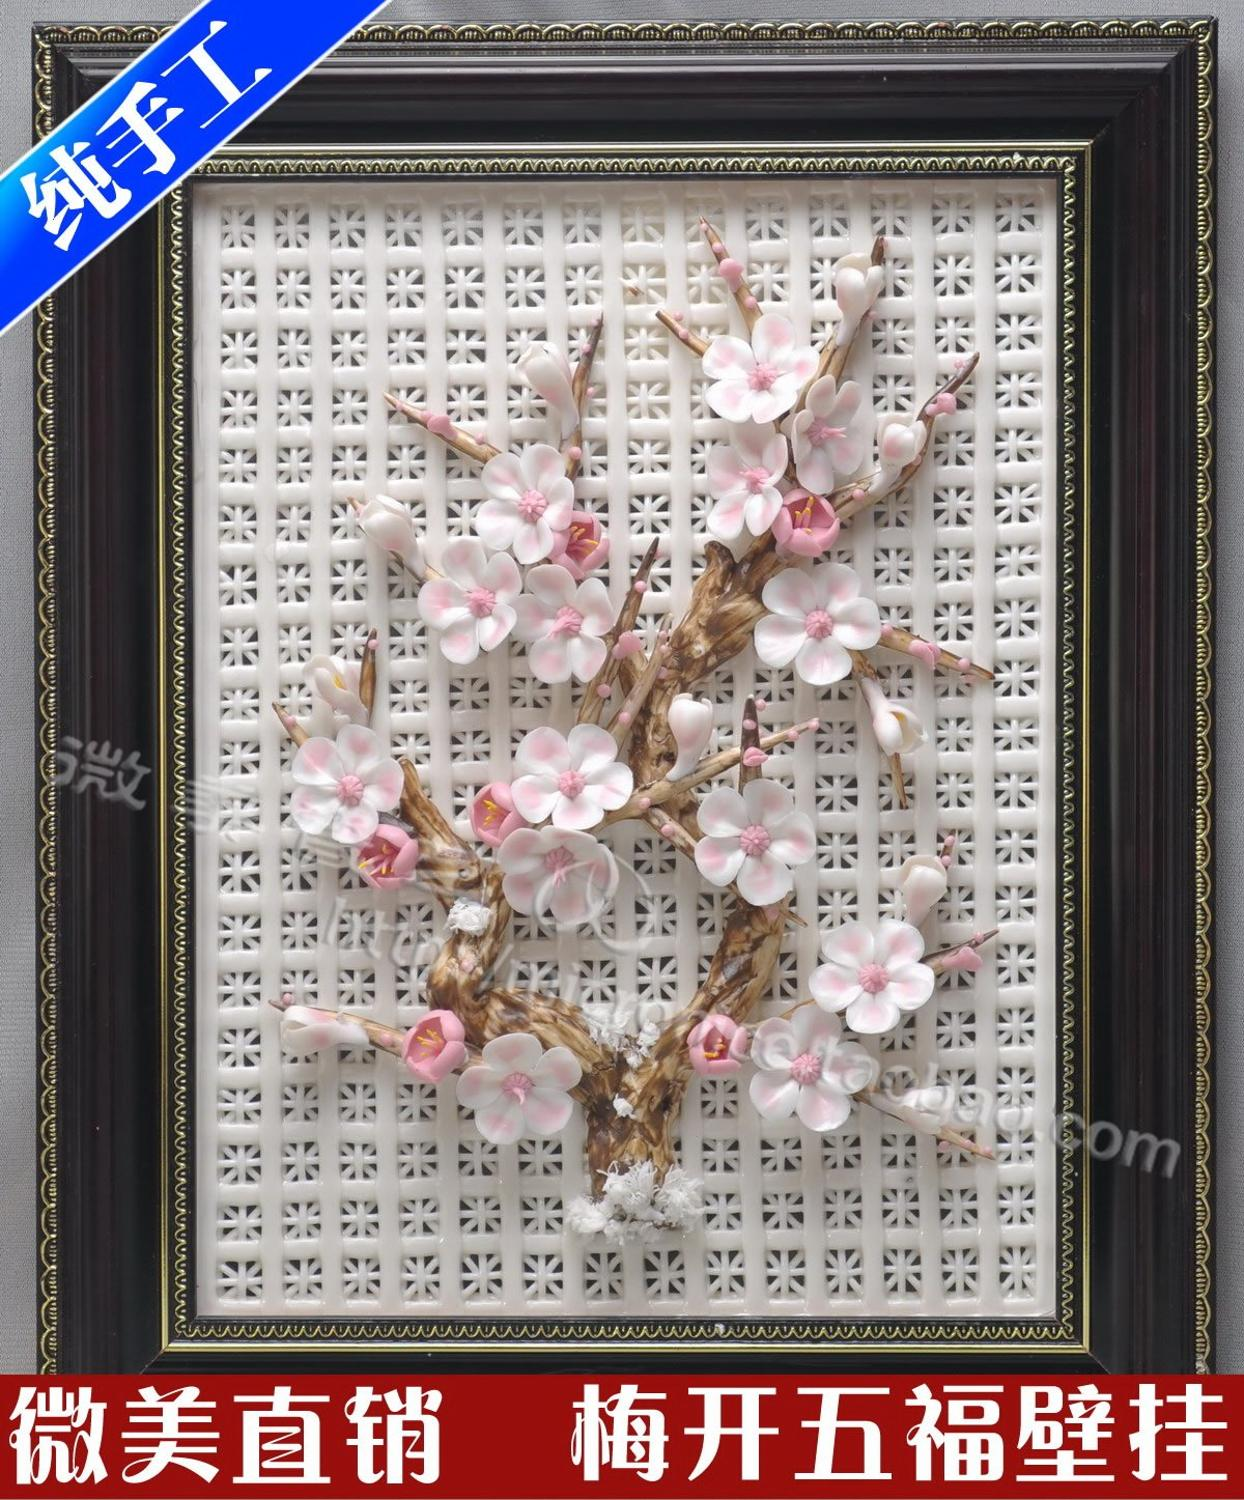 Micro Beautiful Porcelain Art Ceramics Flower Flower Decoration Flower Peach Plum Flower Art Wall Hanging Five Single Room